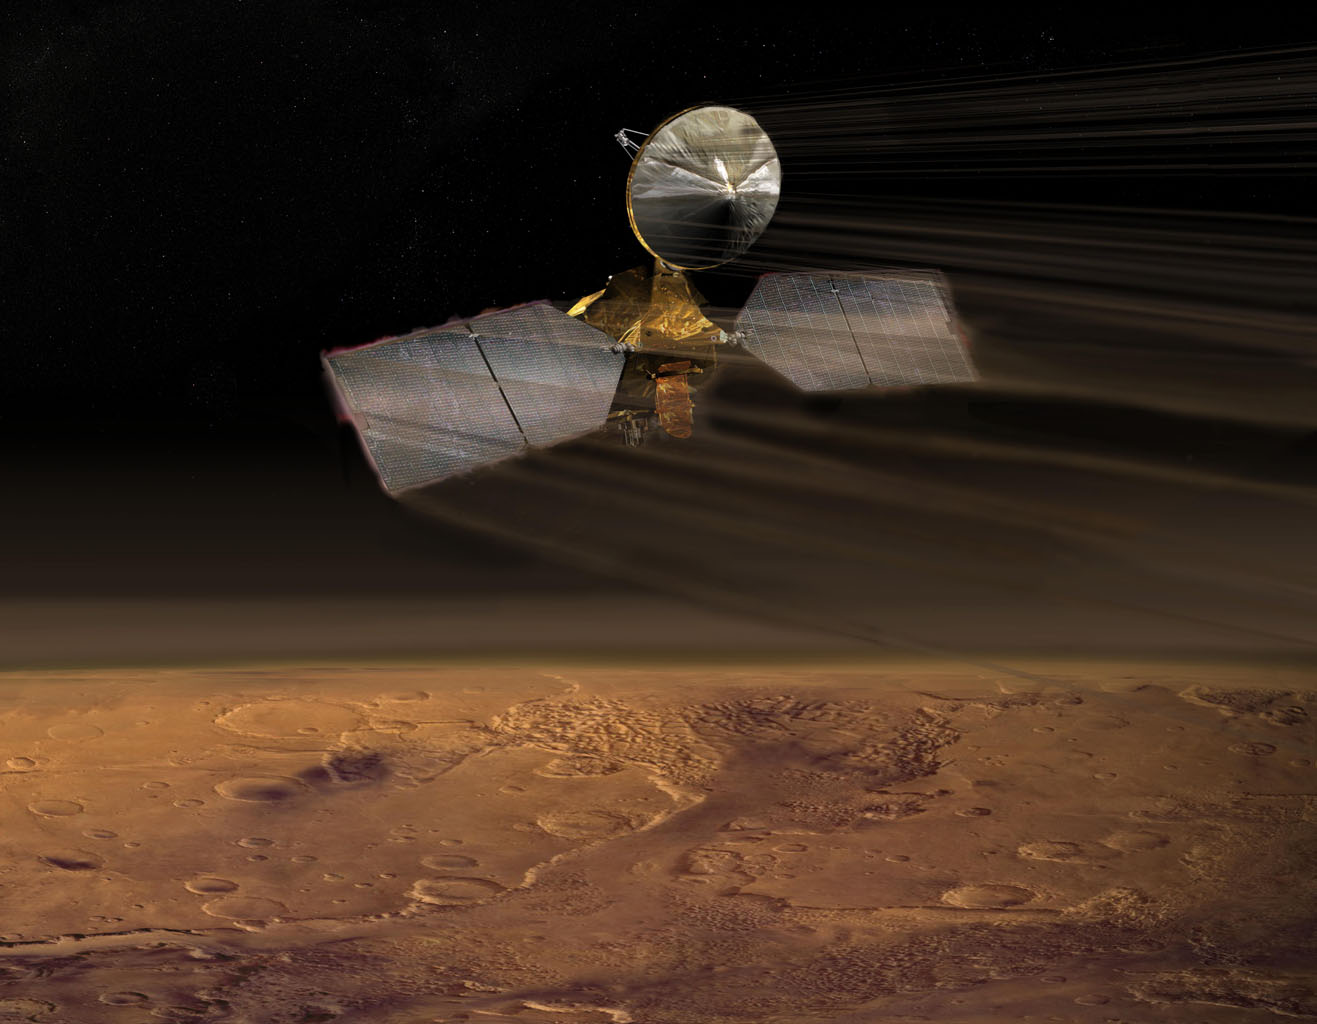 NASA's Mars Reconnaissance Orbiter dips into the thin martian atmosphere to adjust its orbit in this artist's concept illustration.